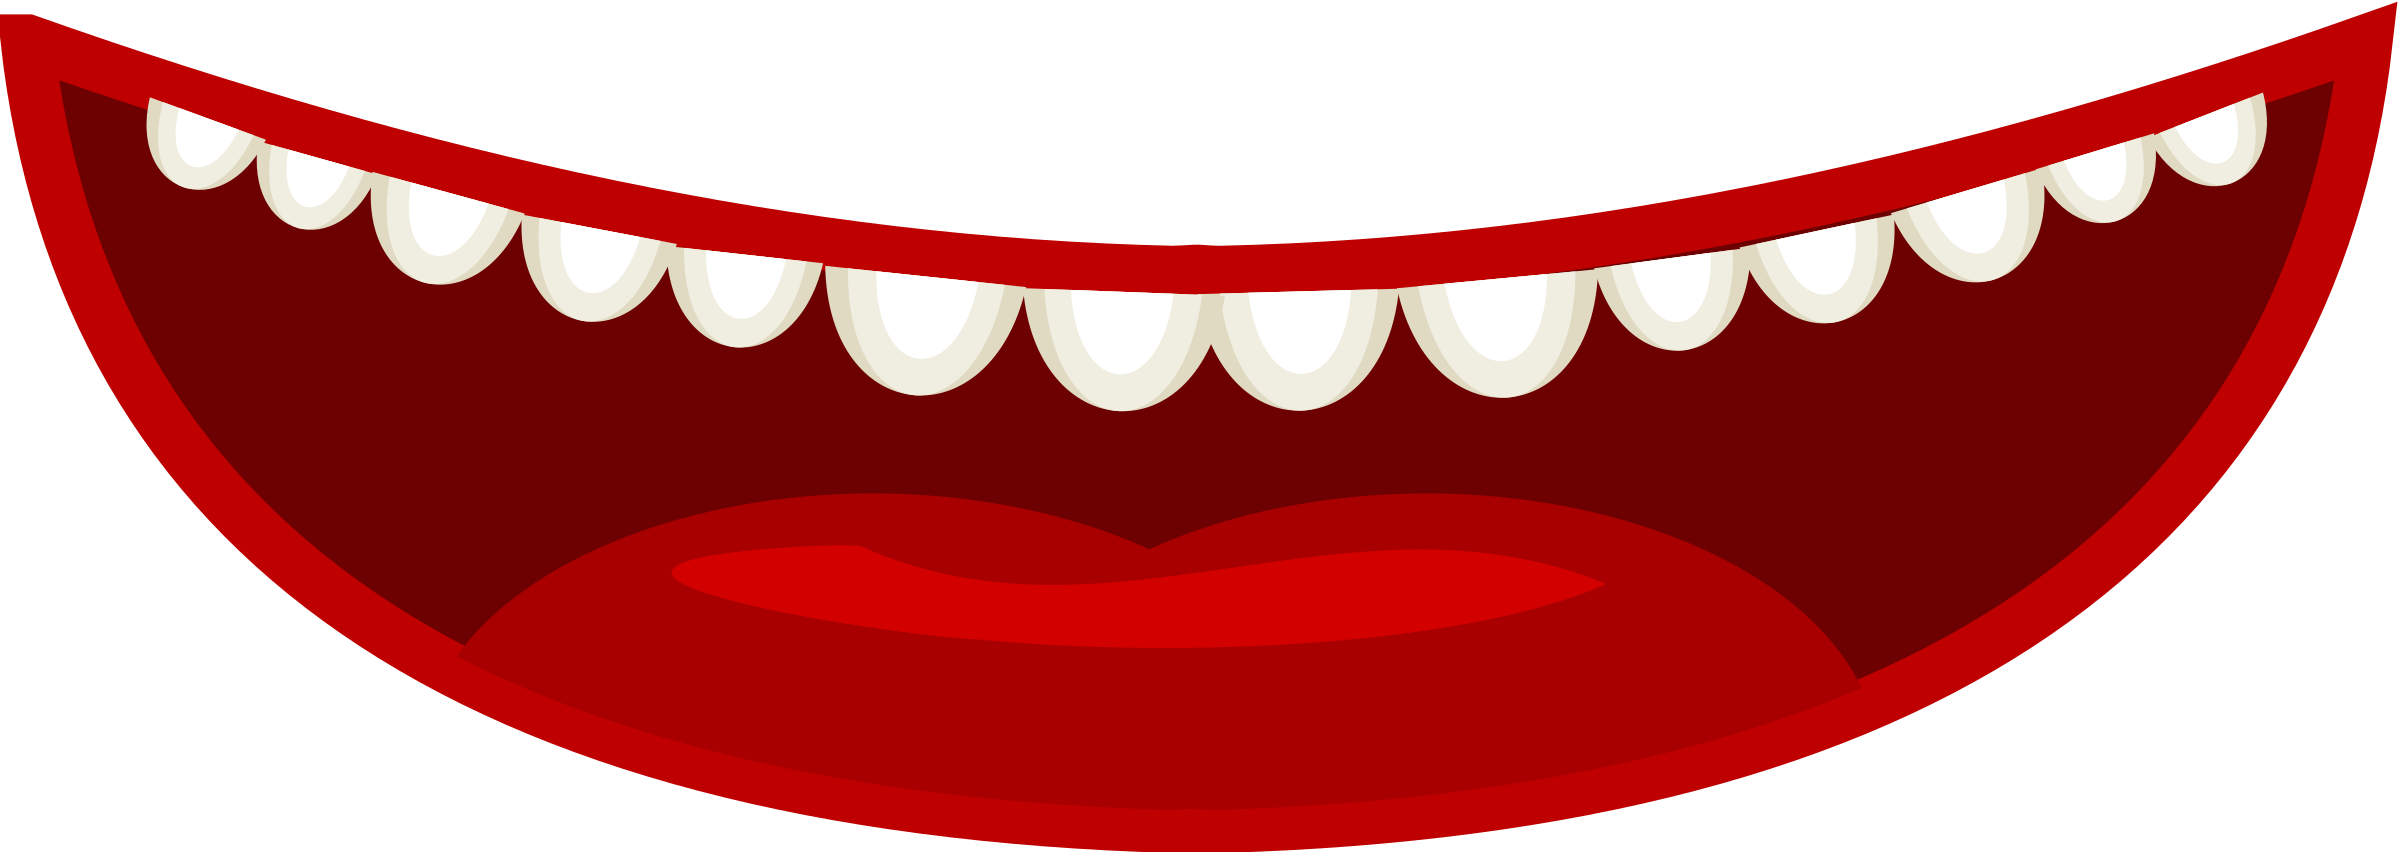 Smile Mouth Png - Smile Lips, Transparent background PNG HD thumbnail